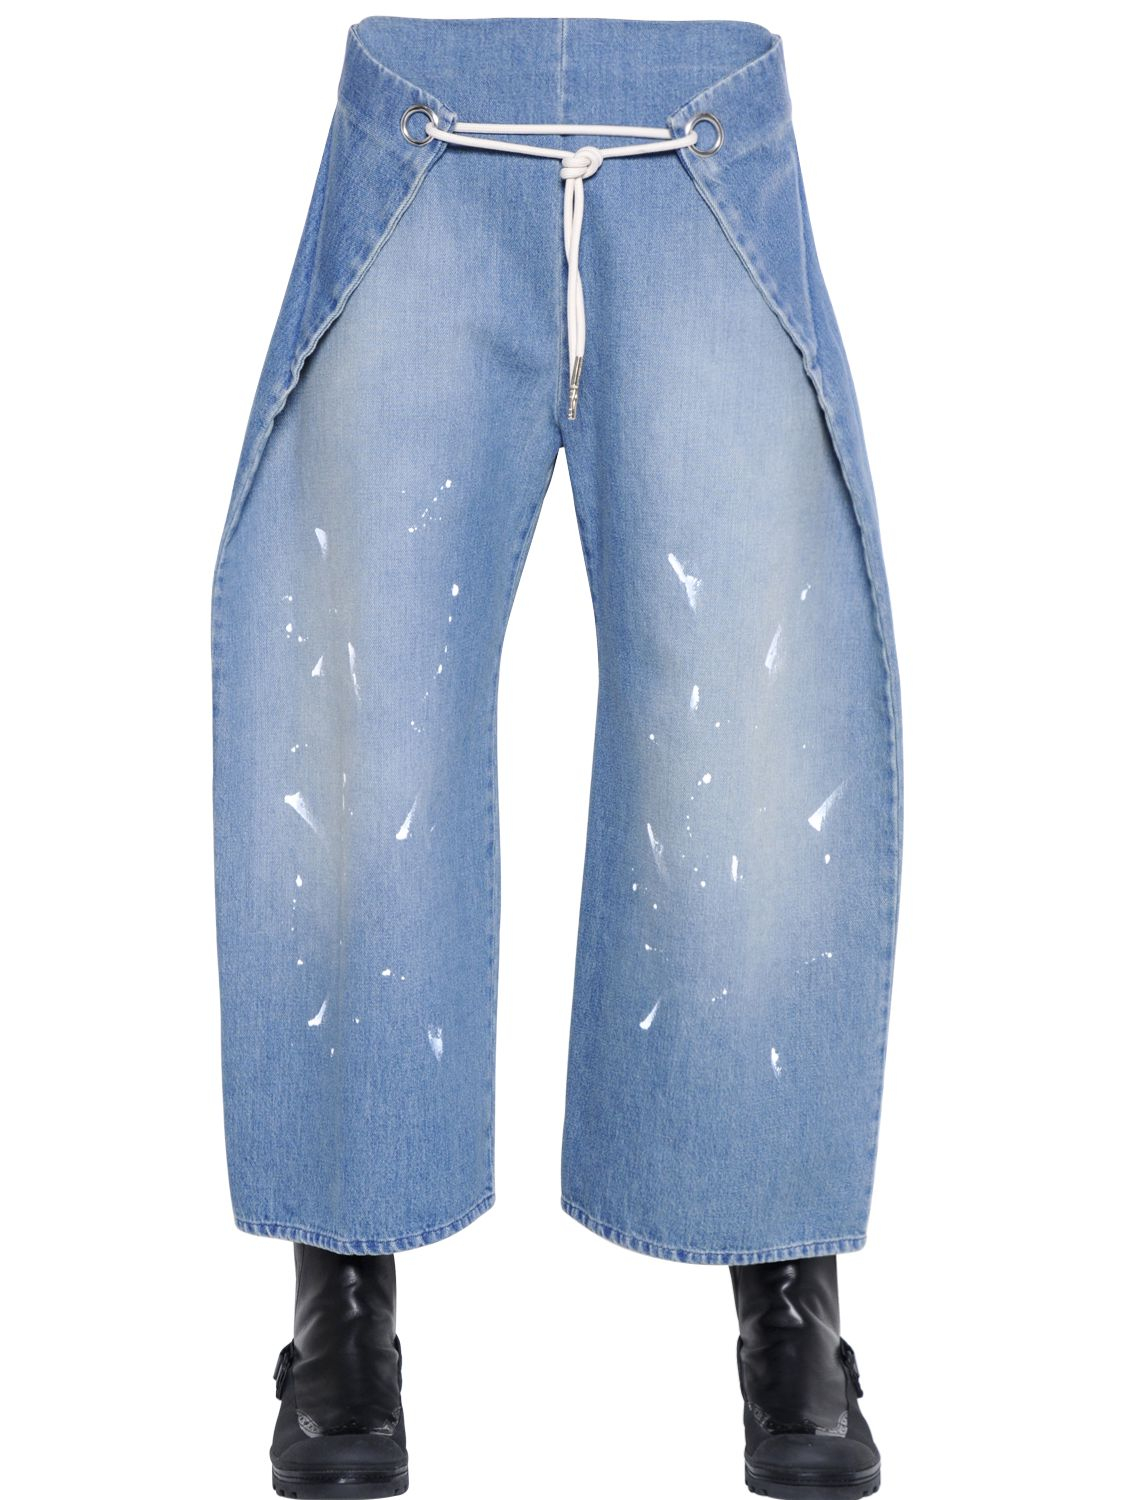 DENIM - Denim trousers Maison Martin Margiela